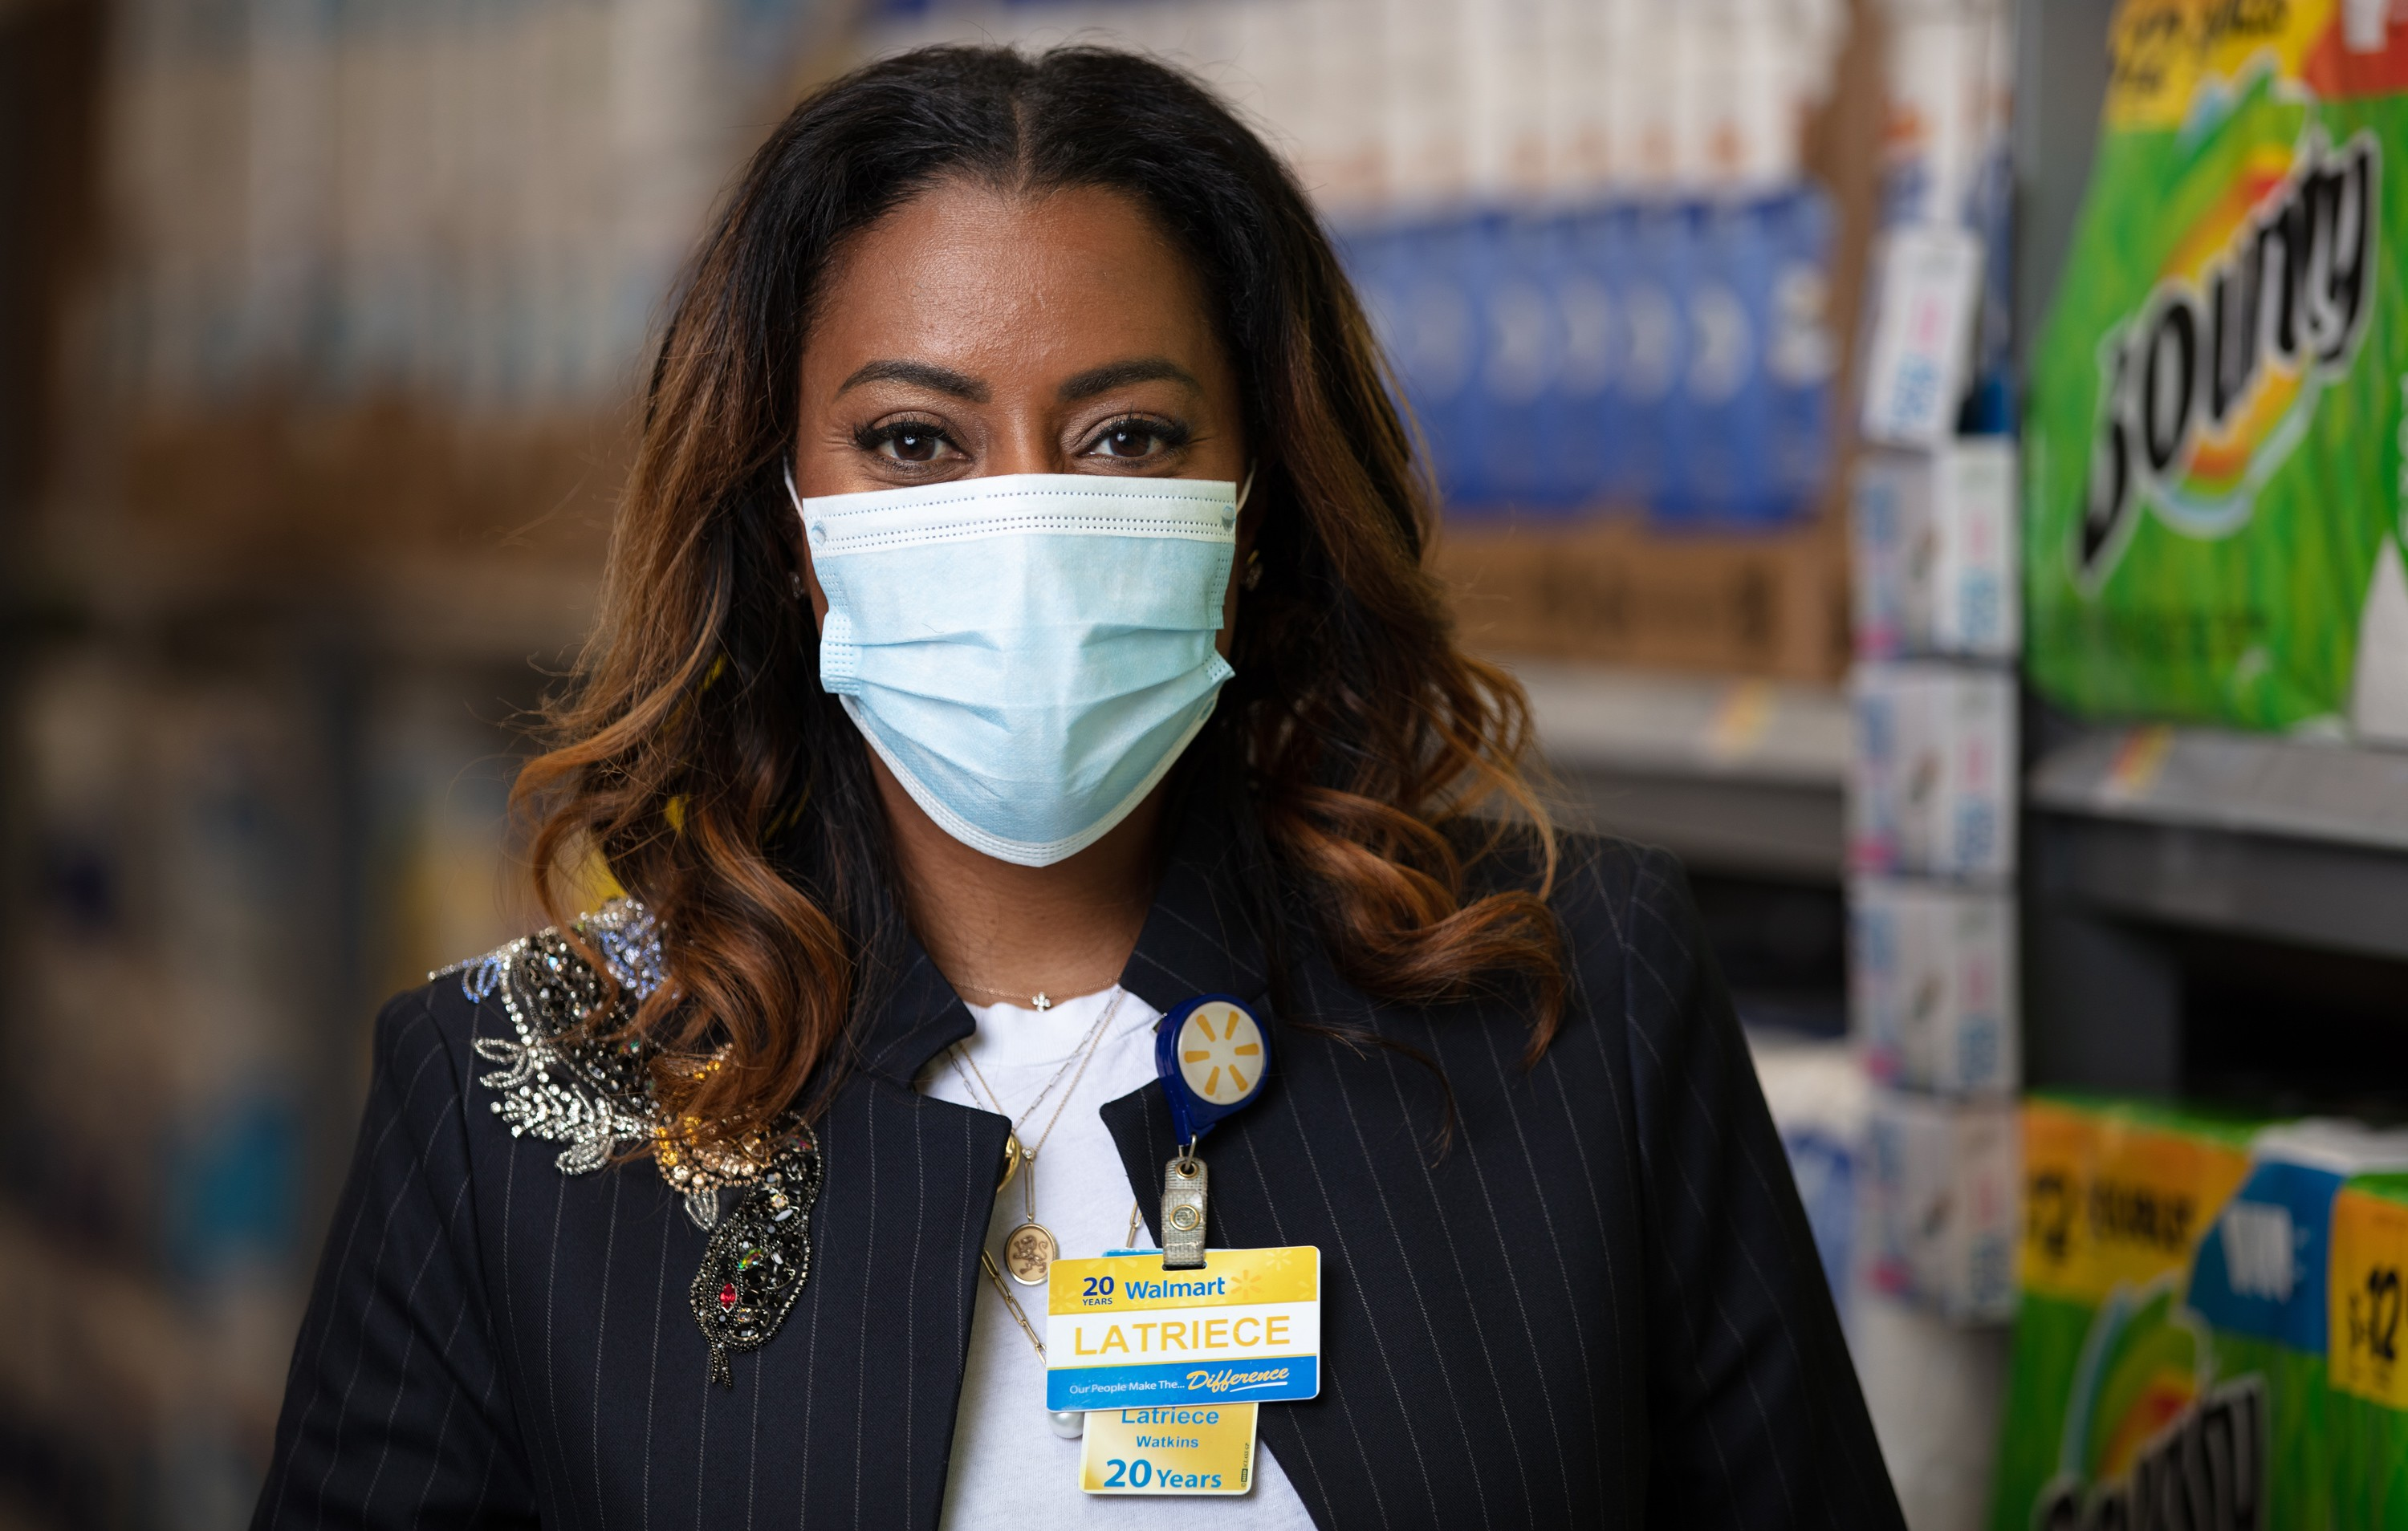 Latriece Watkins, executive vice president of consumables, wears a mask inside a Walmart store